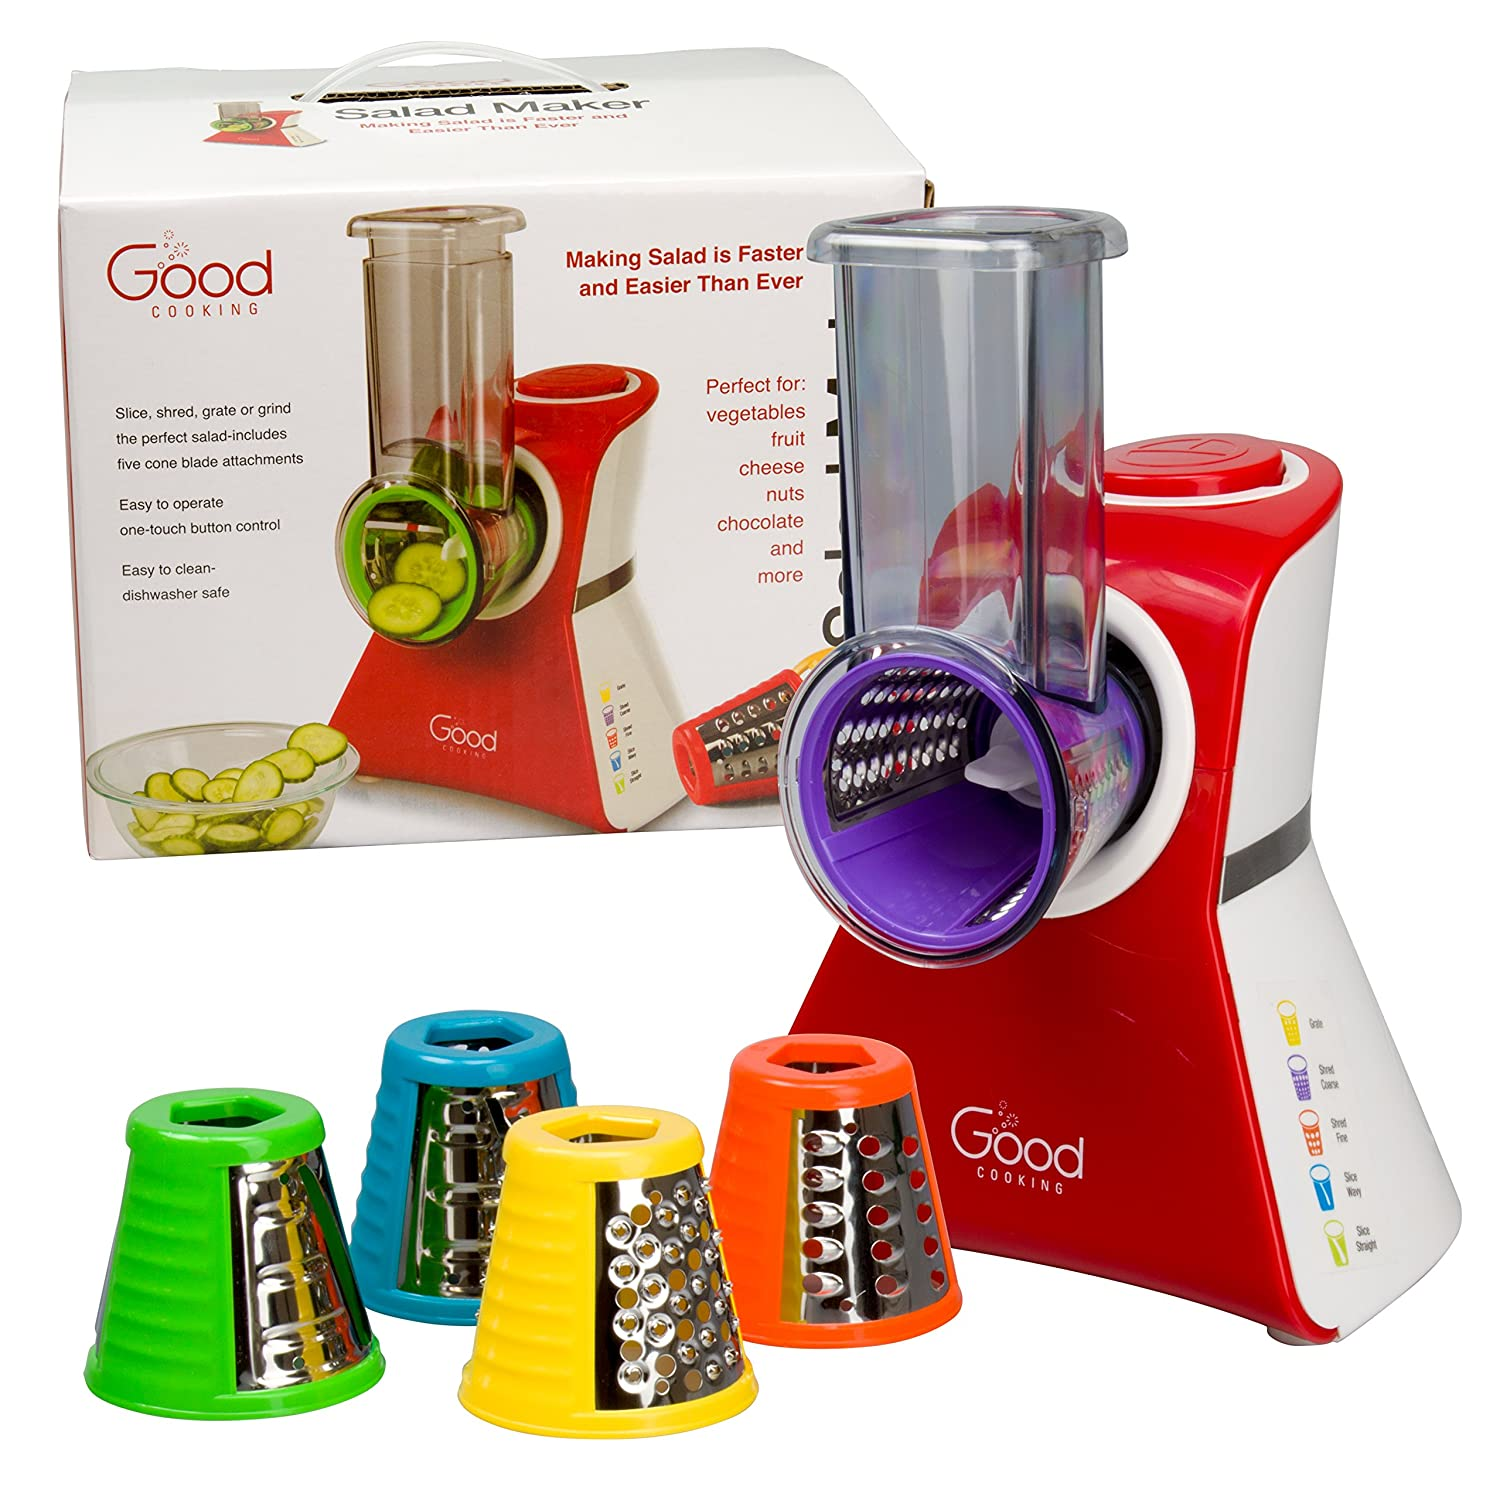 Salad Maker - Electric Shredder, Slicer, Chopper, Shooter with One-Touch Control and 5 FREE Attachments